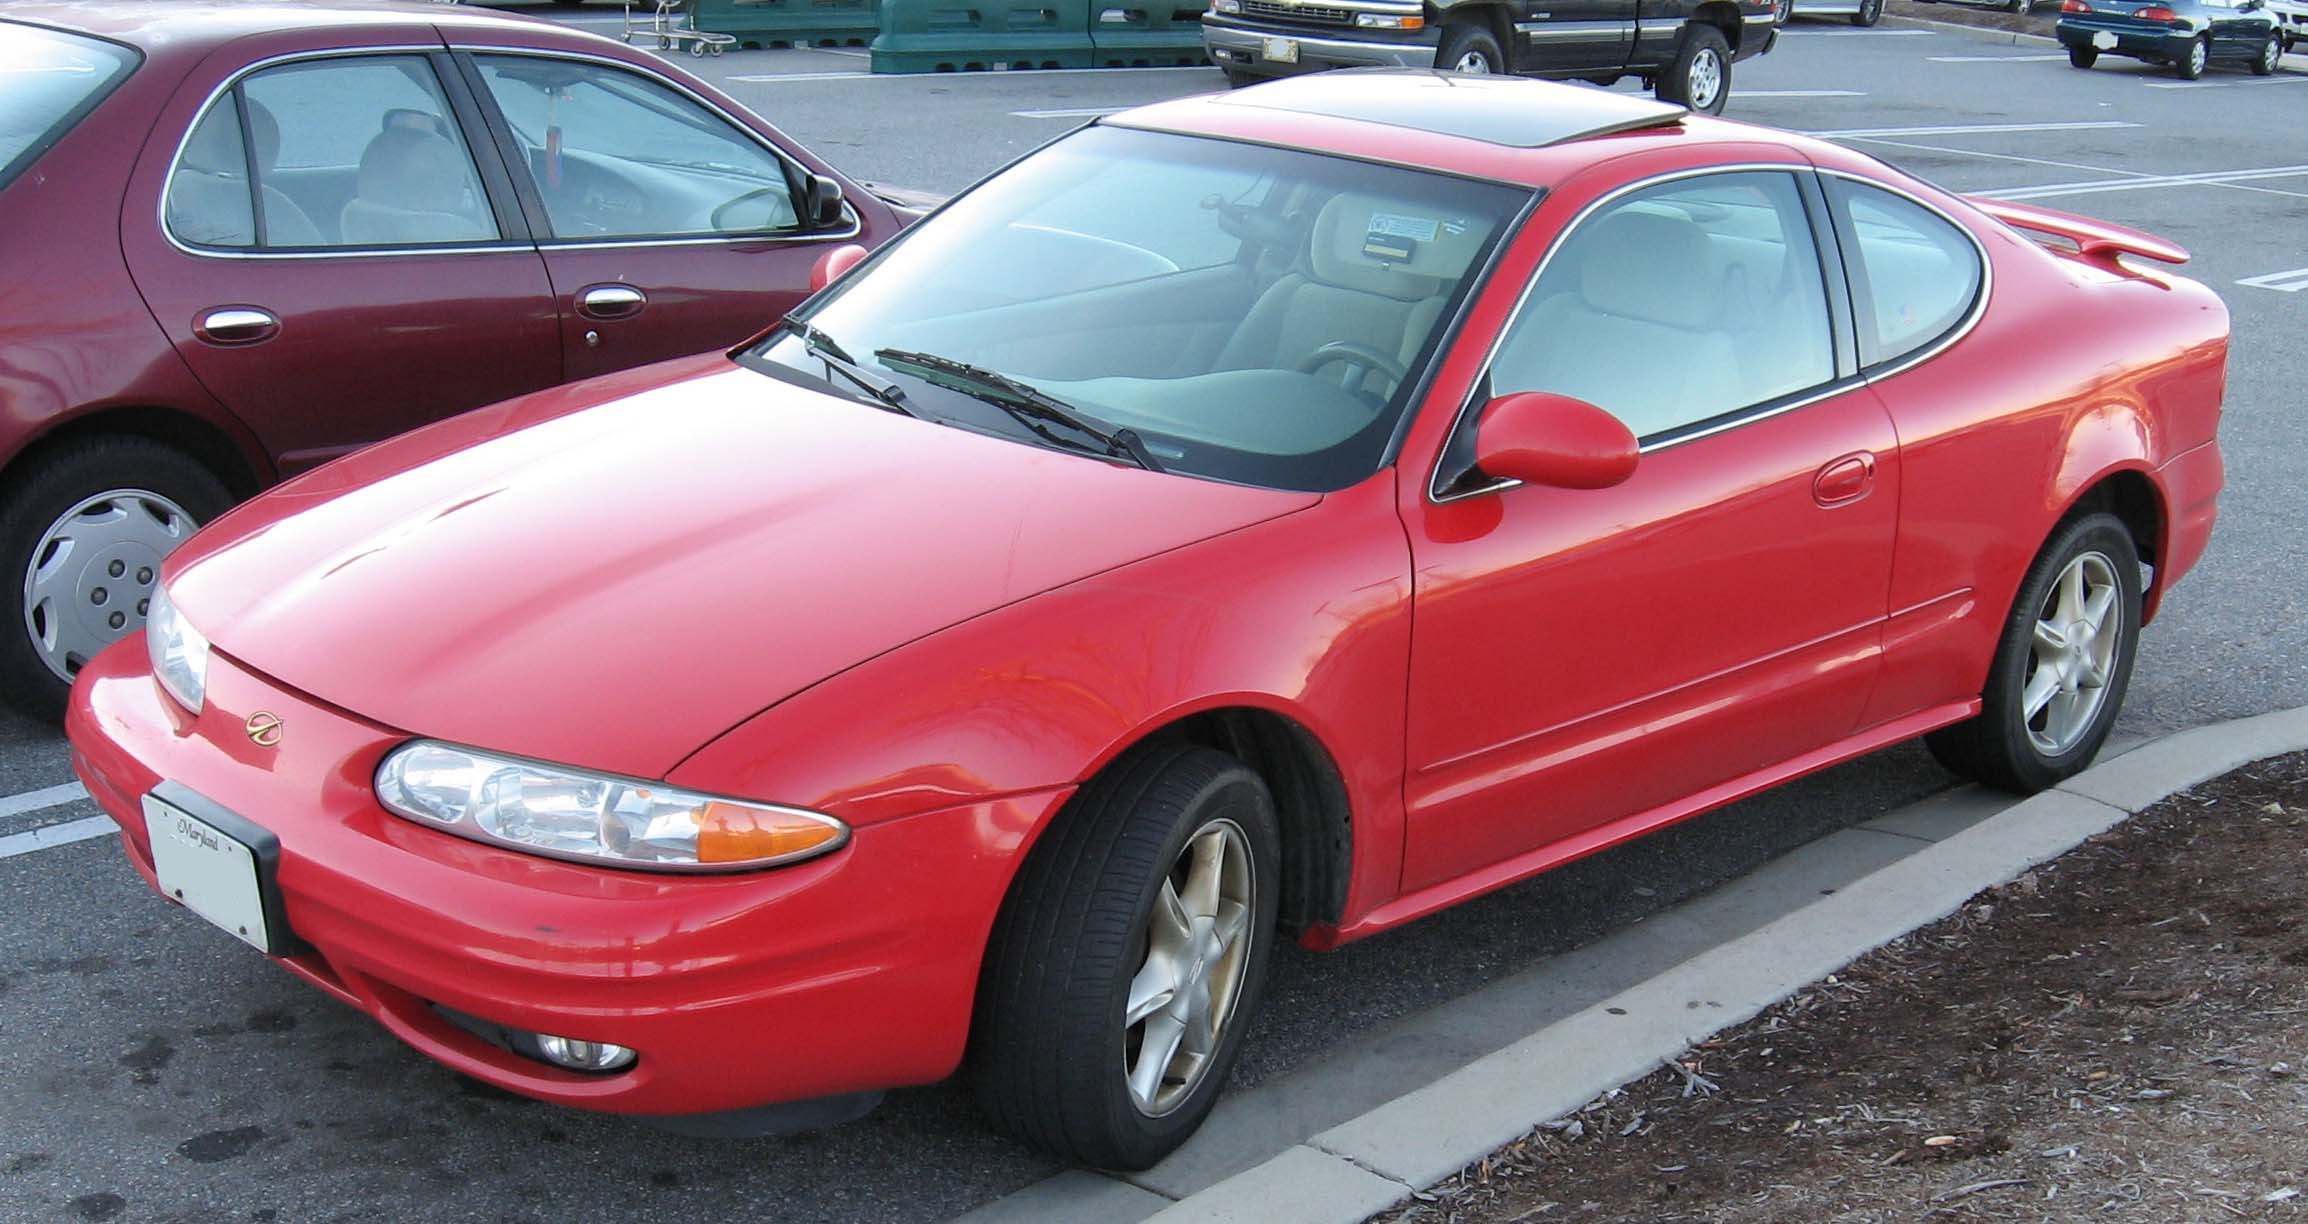 2013 Oldsmobile Alero Engine Diagram Basic Guide Wiring 2000 File Coupe Wikimedia Commons Rh Org 2002